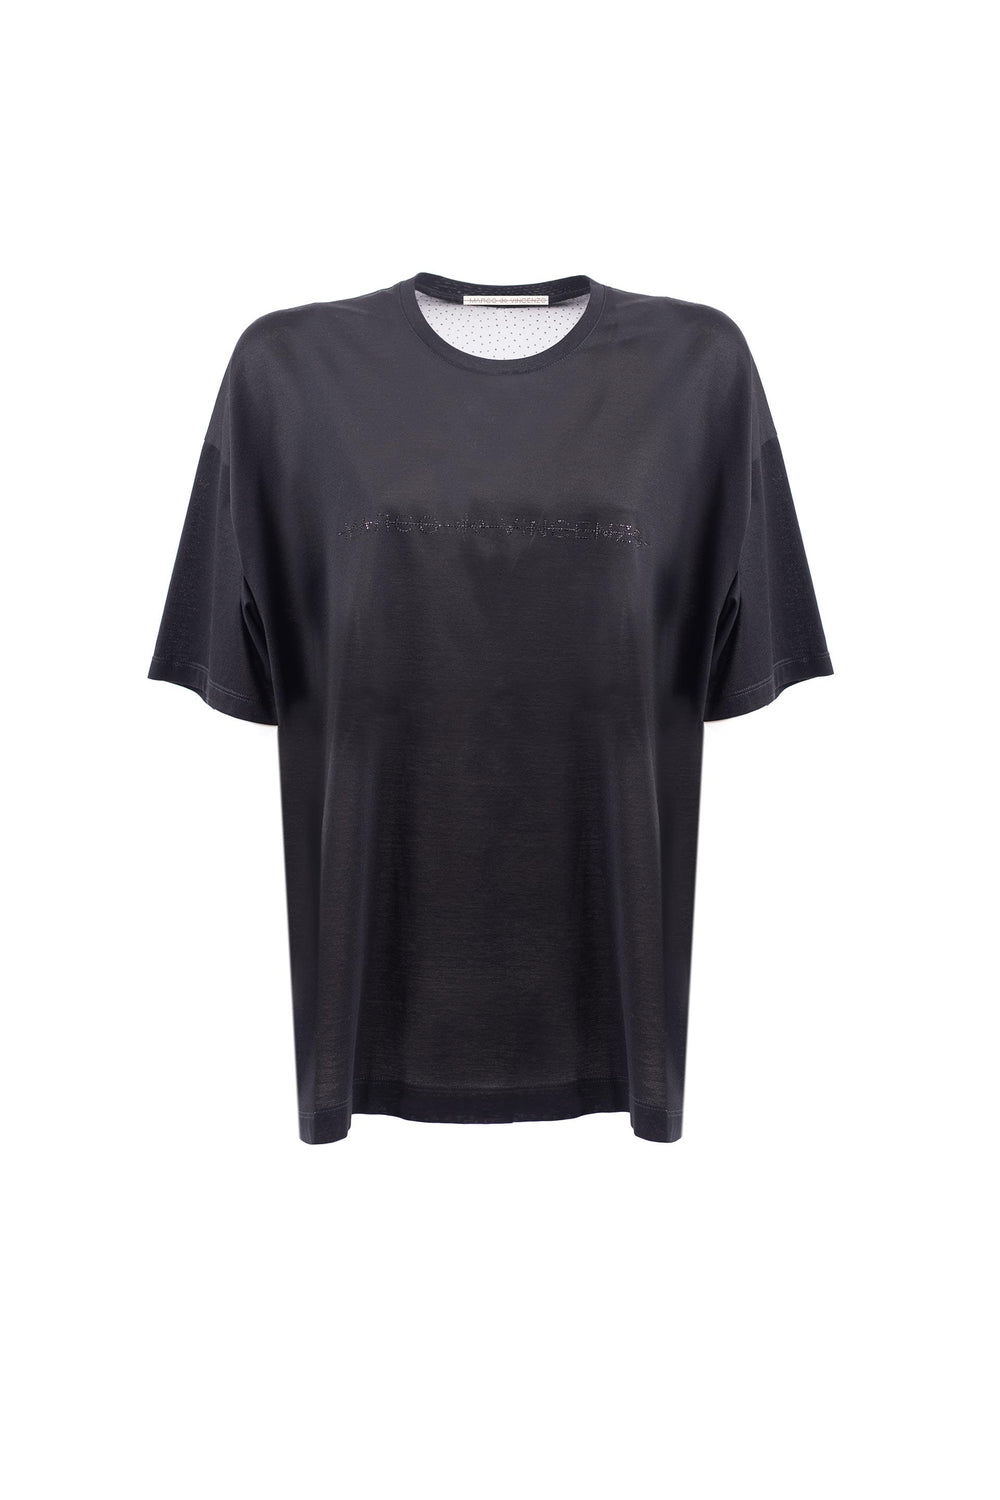 Oversized T-shirt with rhinestone logo